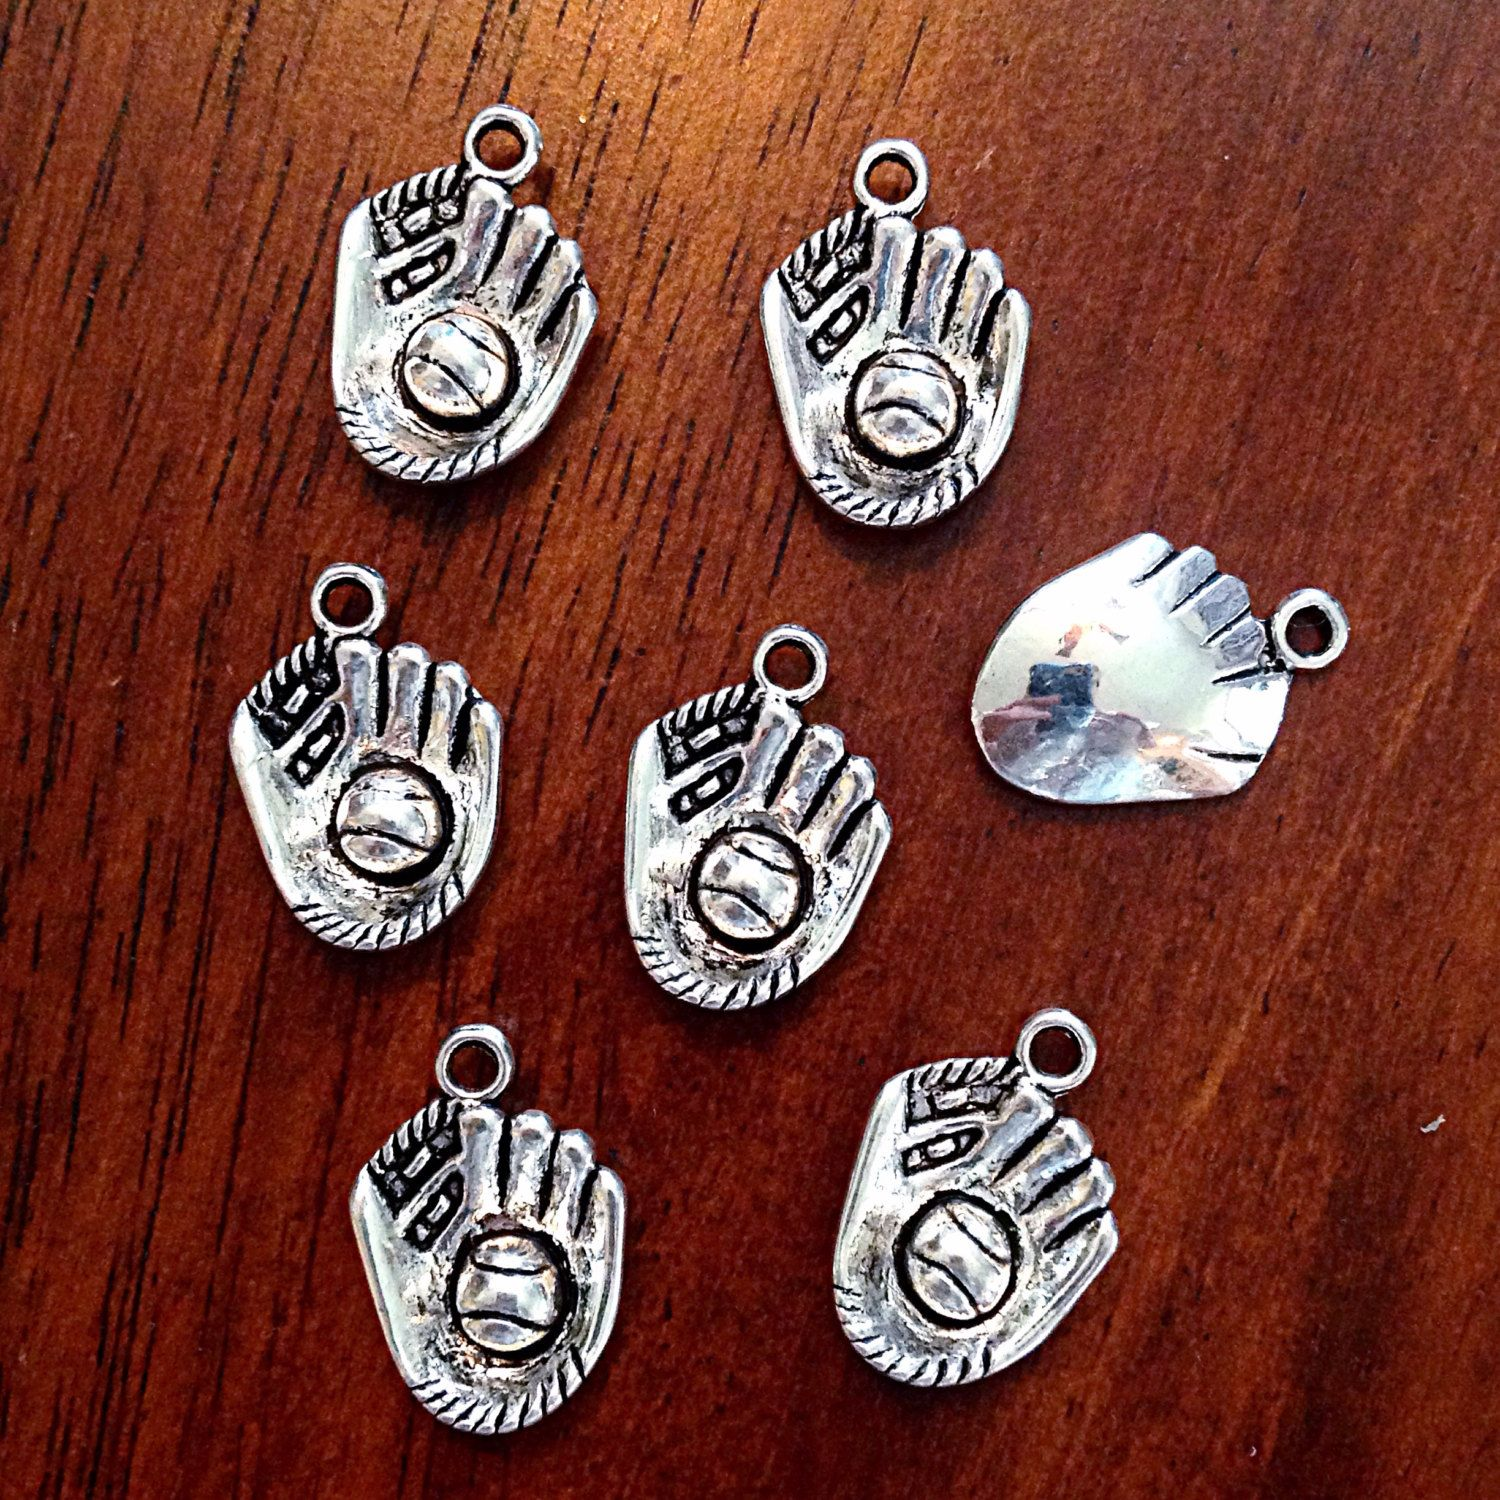 8 Baseball Charms Antiqued Silver Softball Pendants Sports Jewelry Findings